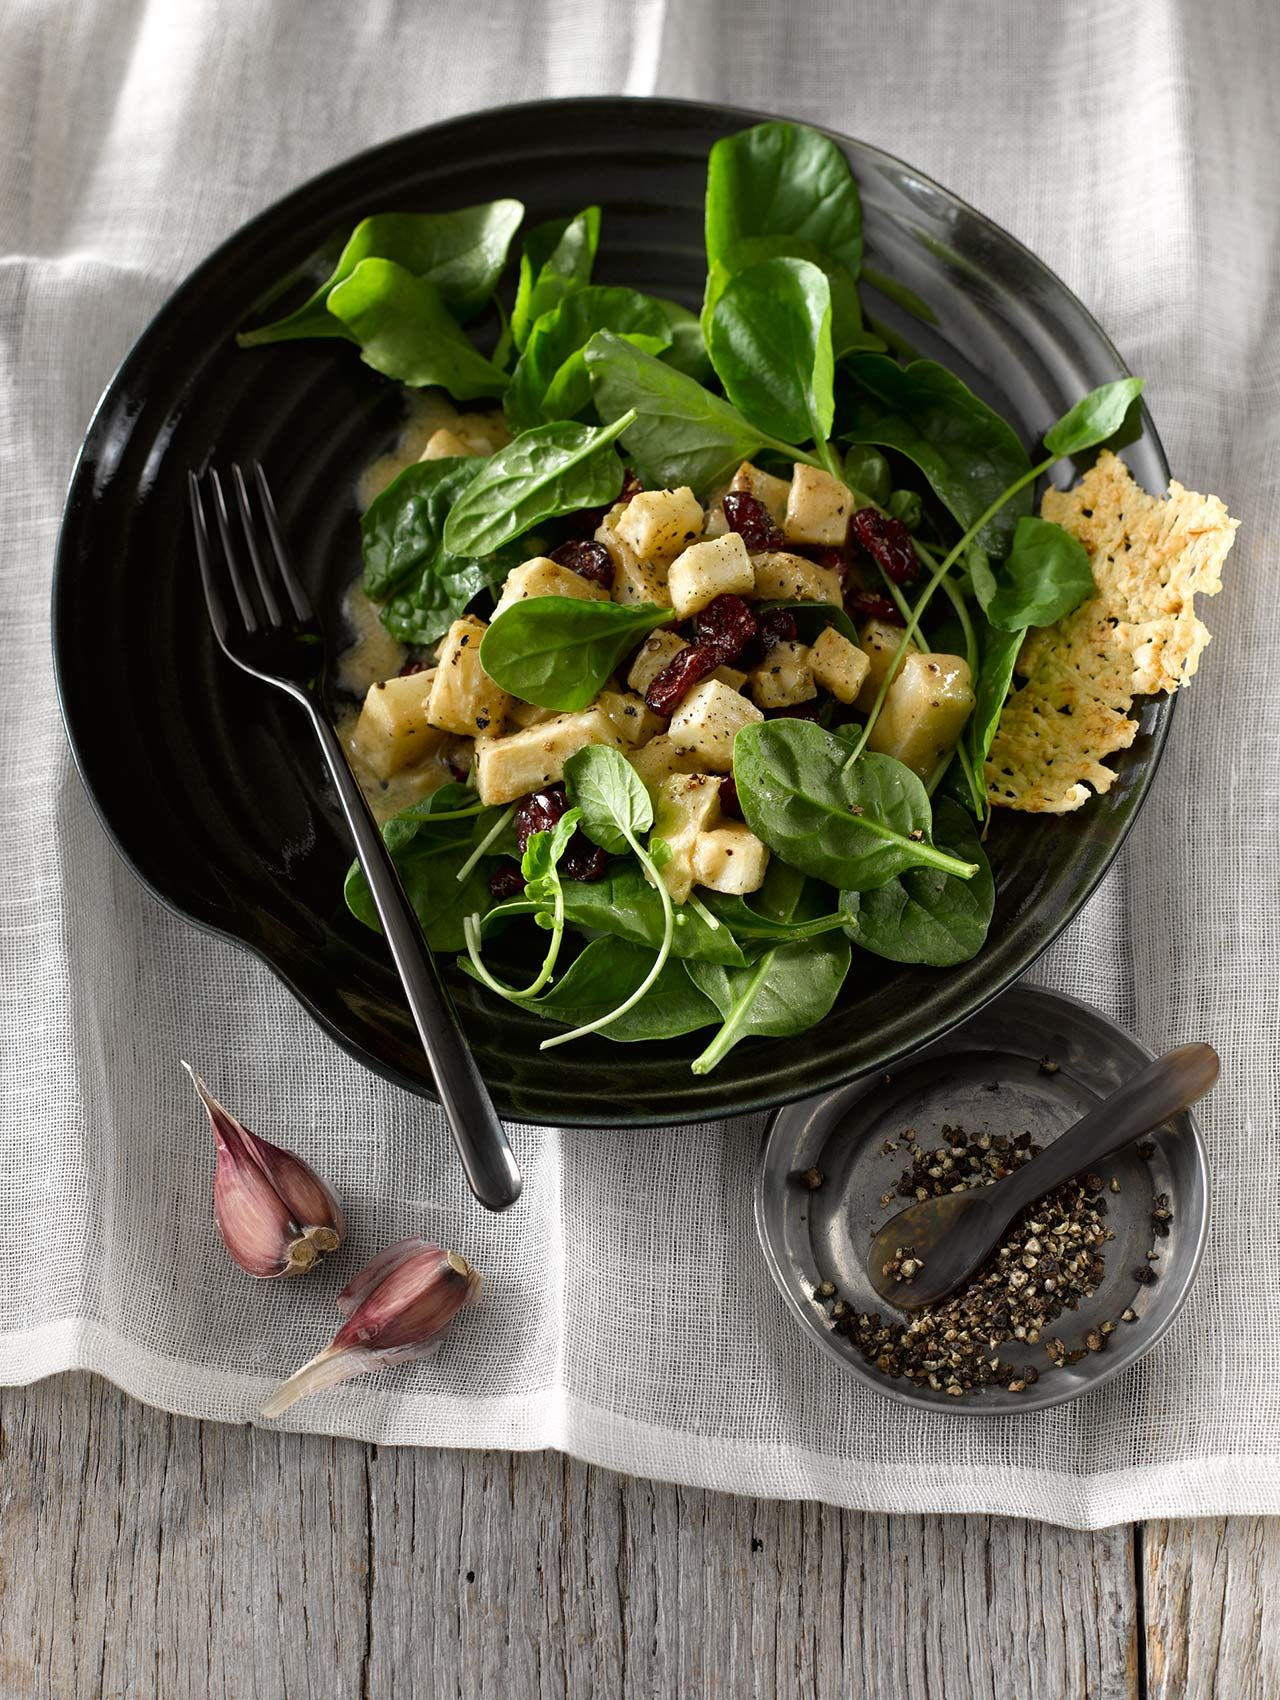 Cress Spinach Salad